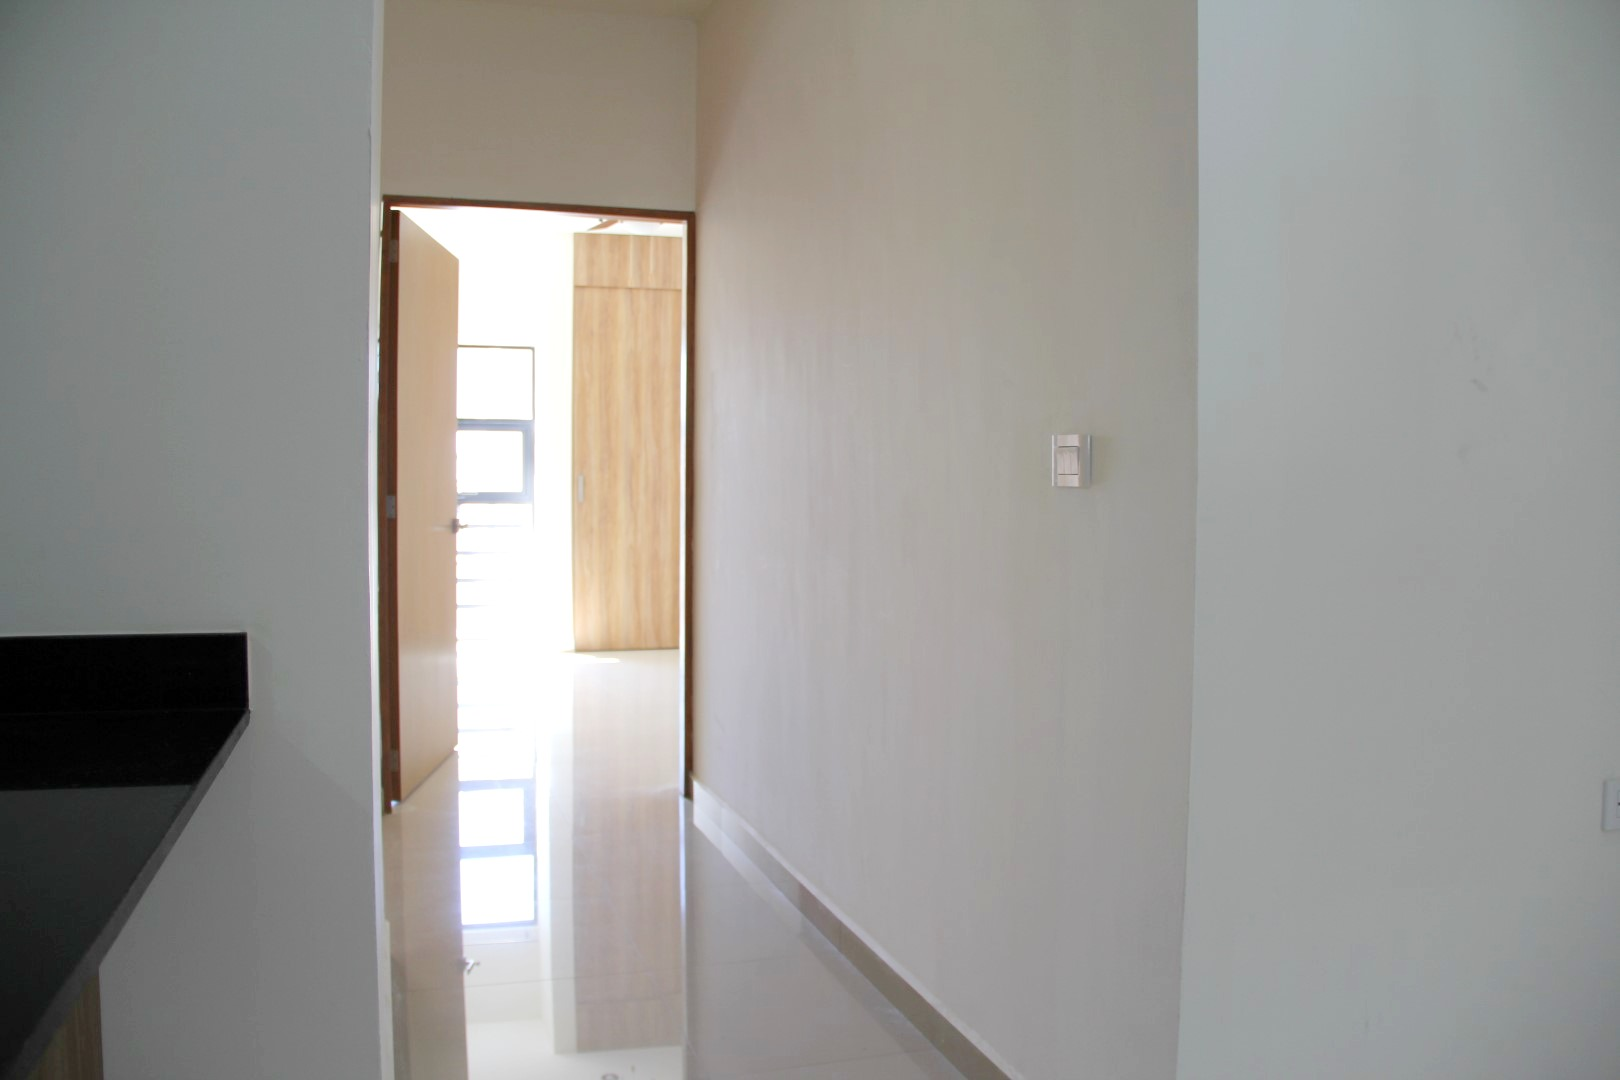 Hallway to bedrooms and bathrooms.